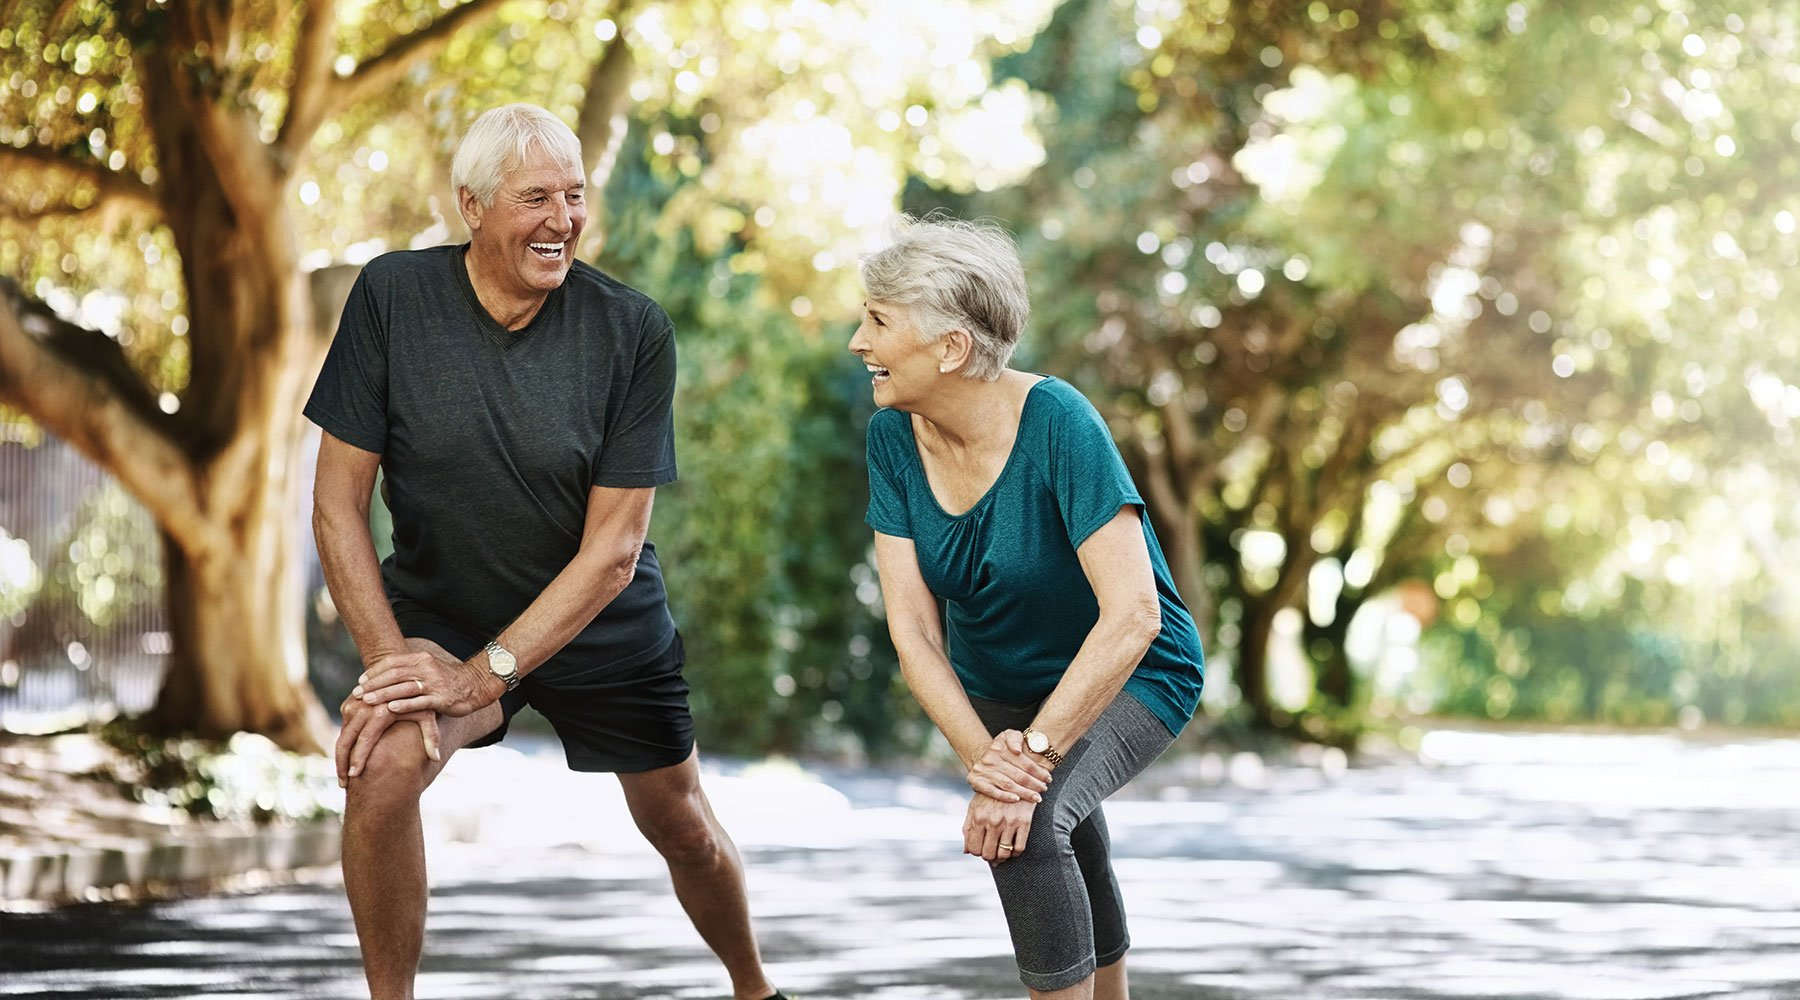 Grandparents stretching in the park to maintain their physical health